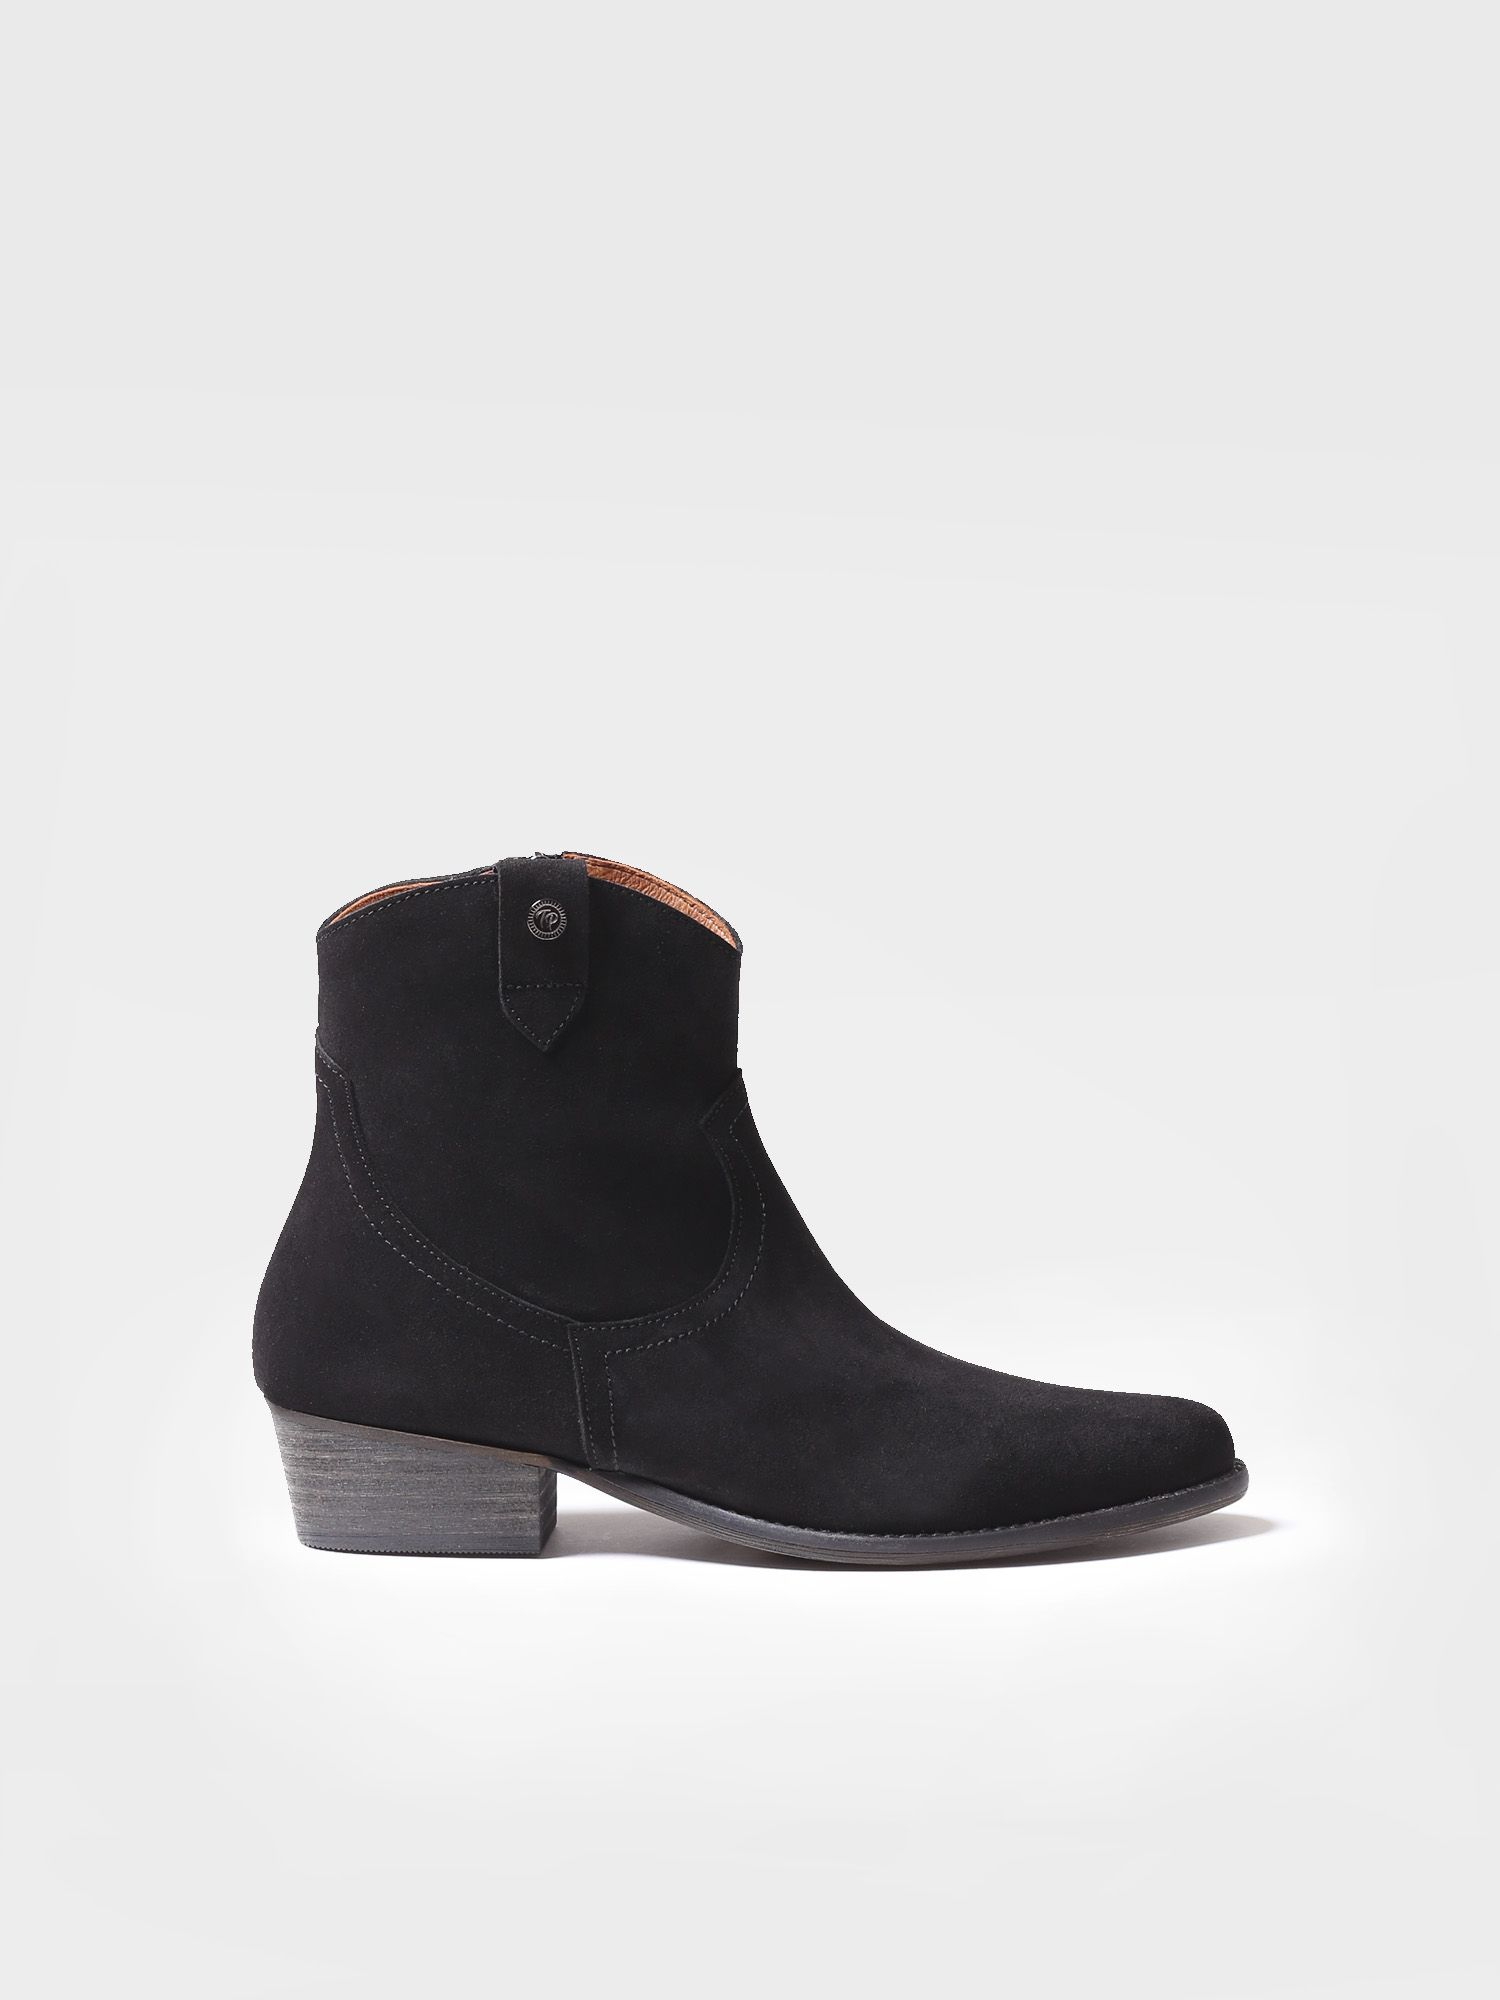 Ankle boot for women made of suede - URBAN-SY